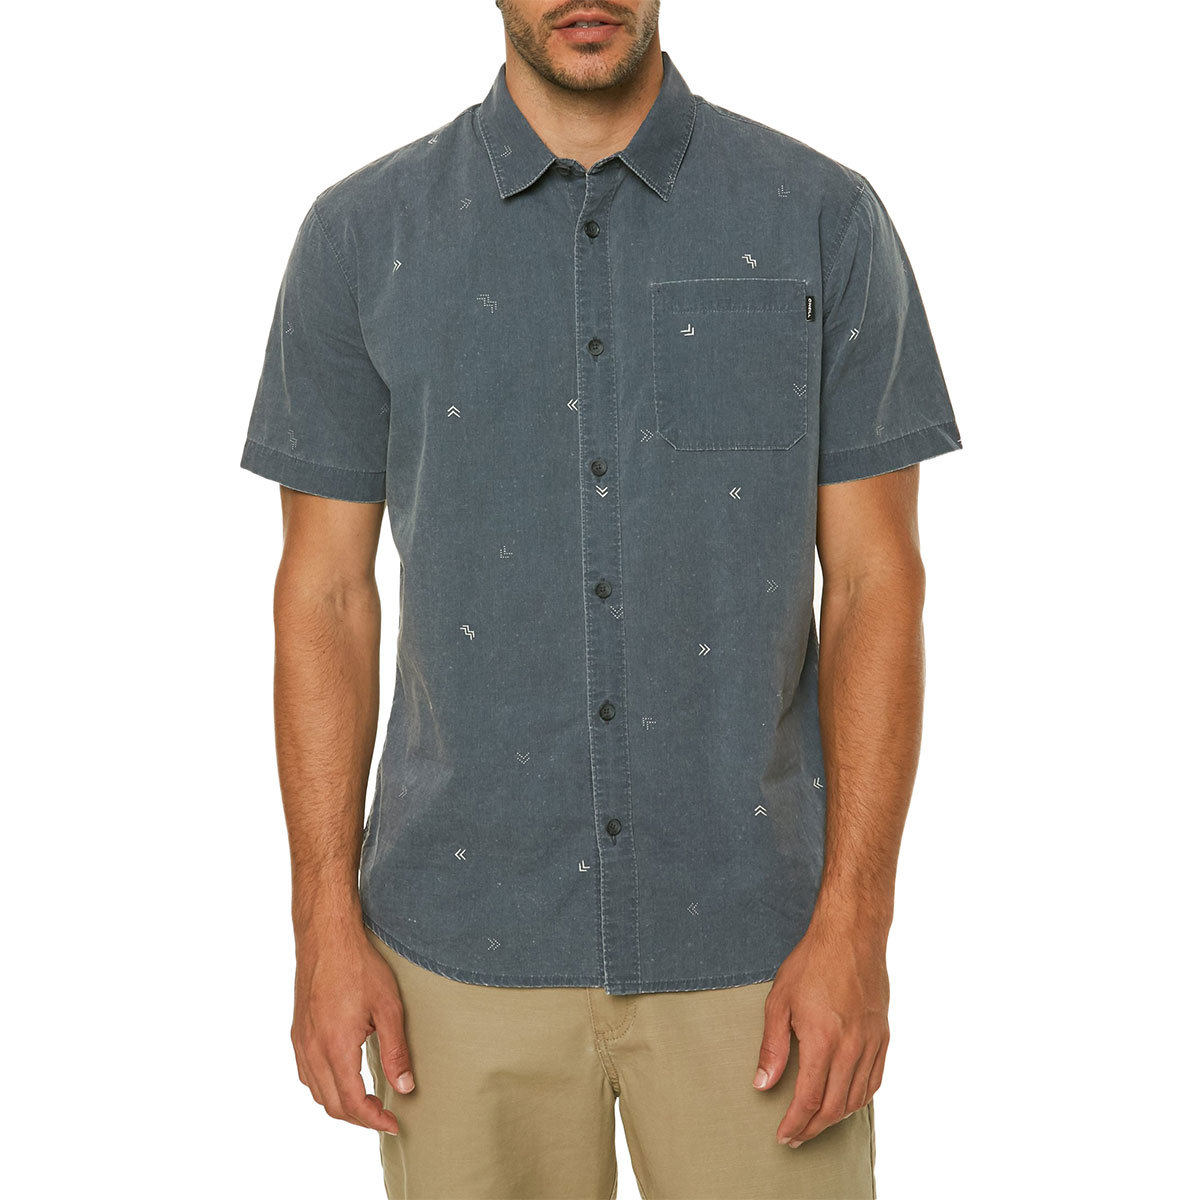 O'neill Guys' Kruger Short-Sleeve Shirt - Blue, M